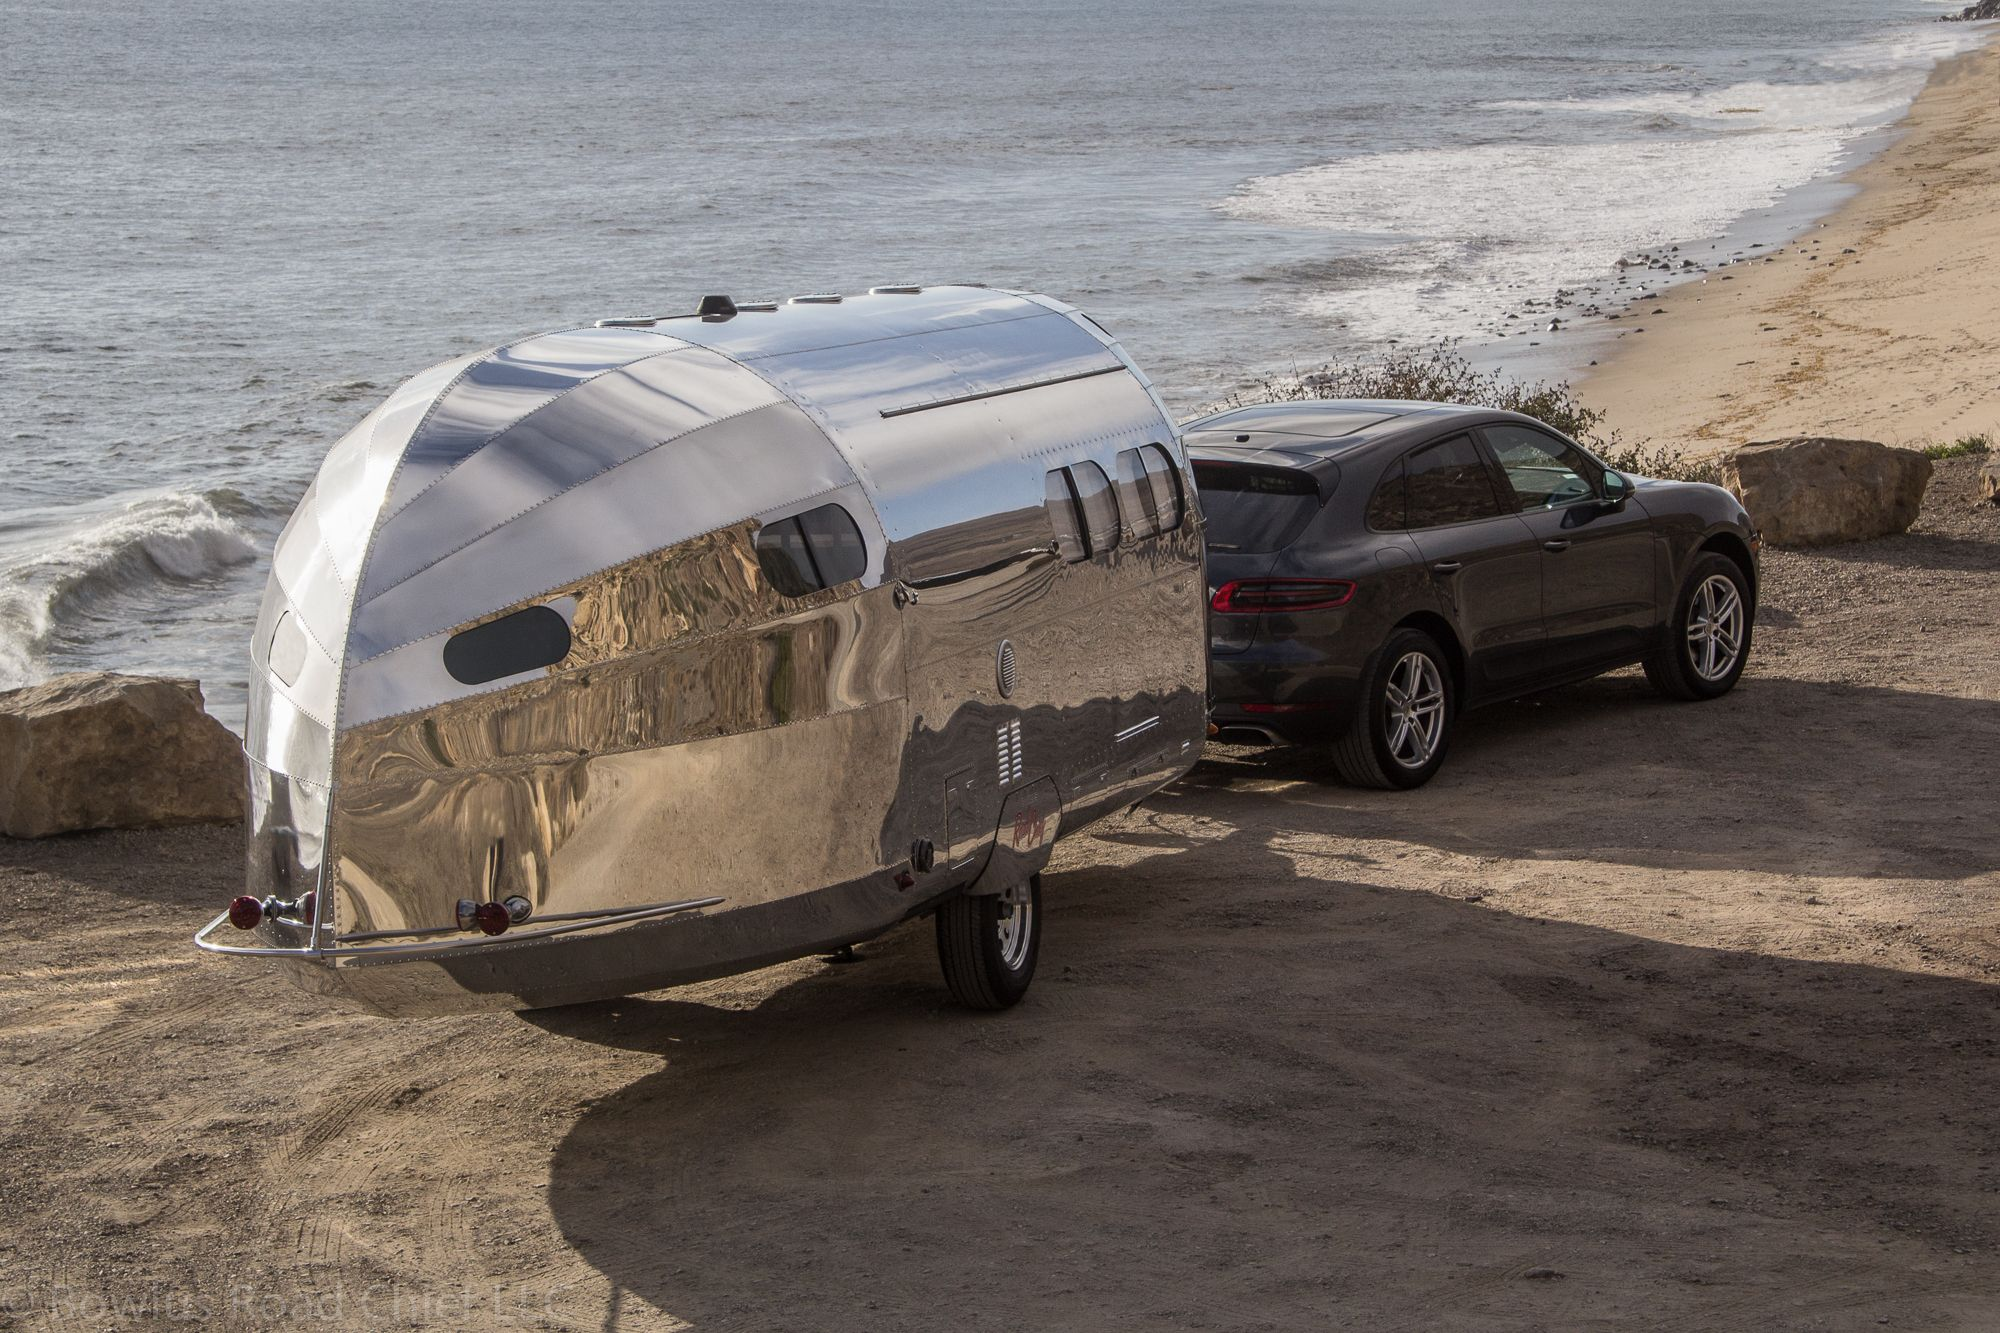 The Latest Bowlus Road Chief Is Like a Luxury Yacht on Wheels